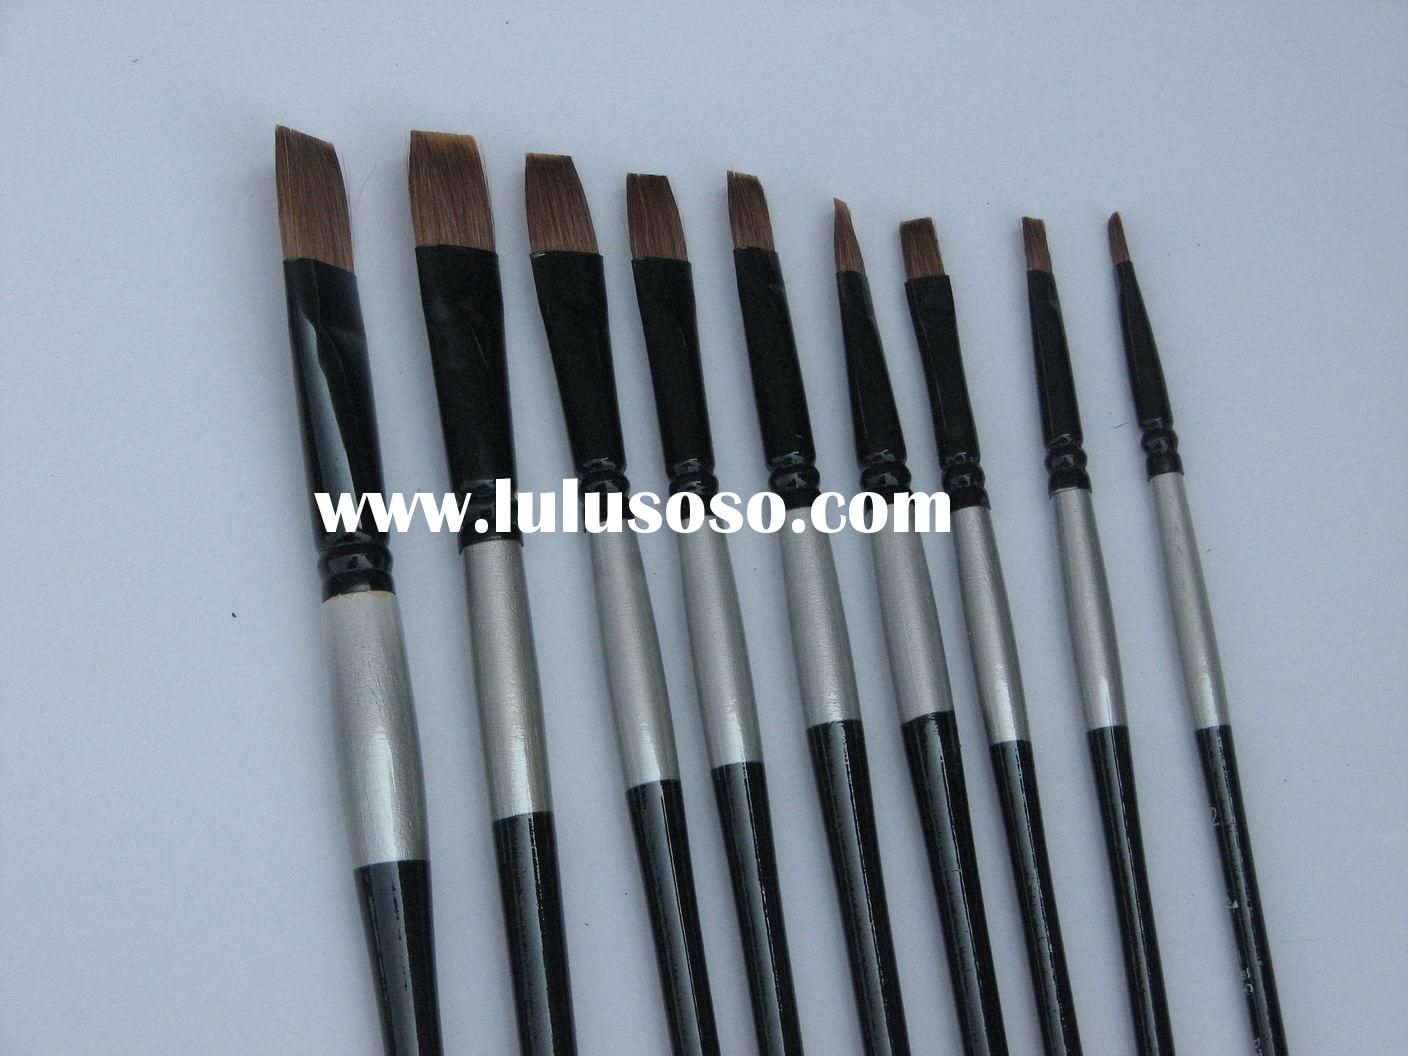 Best quality Weasel hair Paint brushes